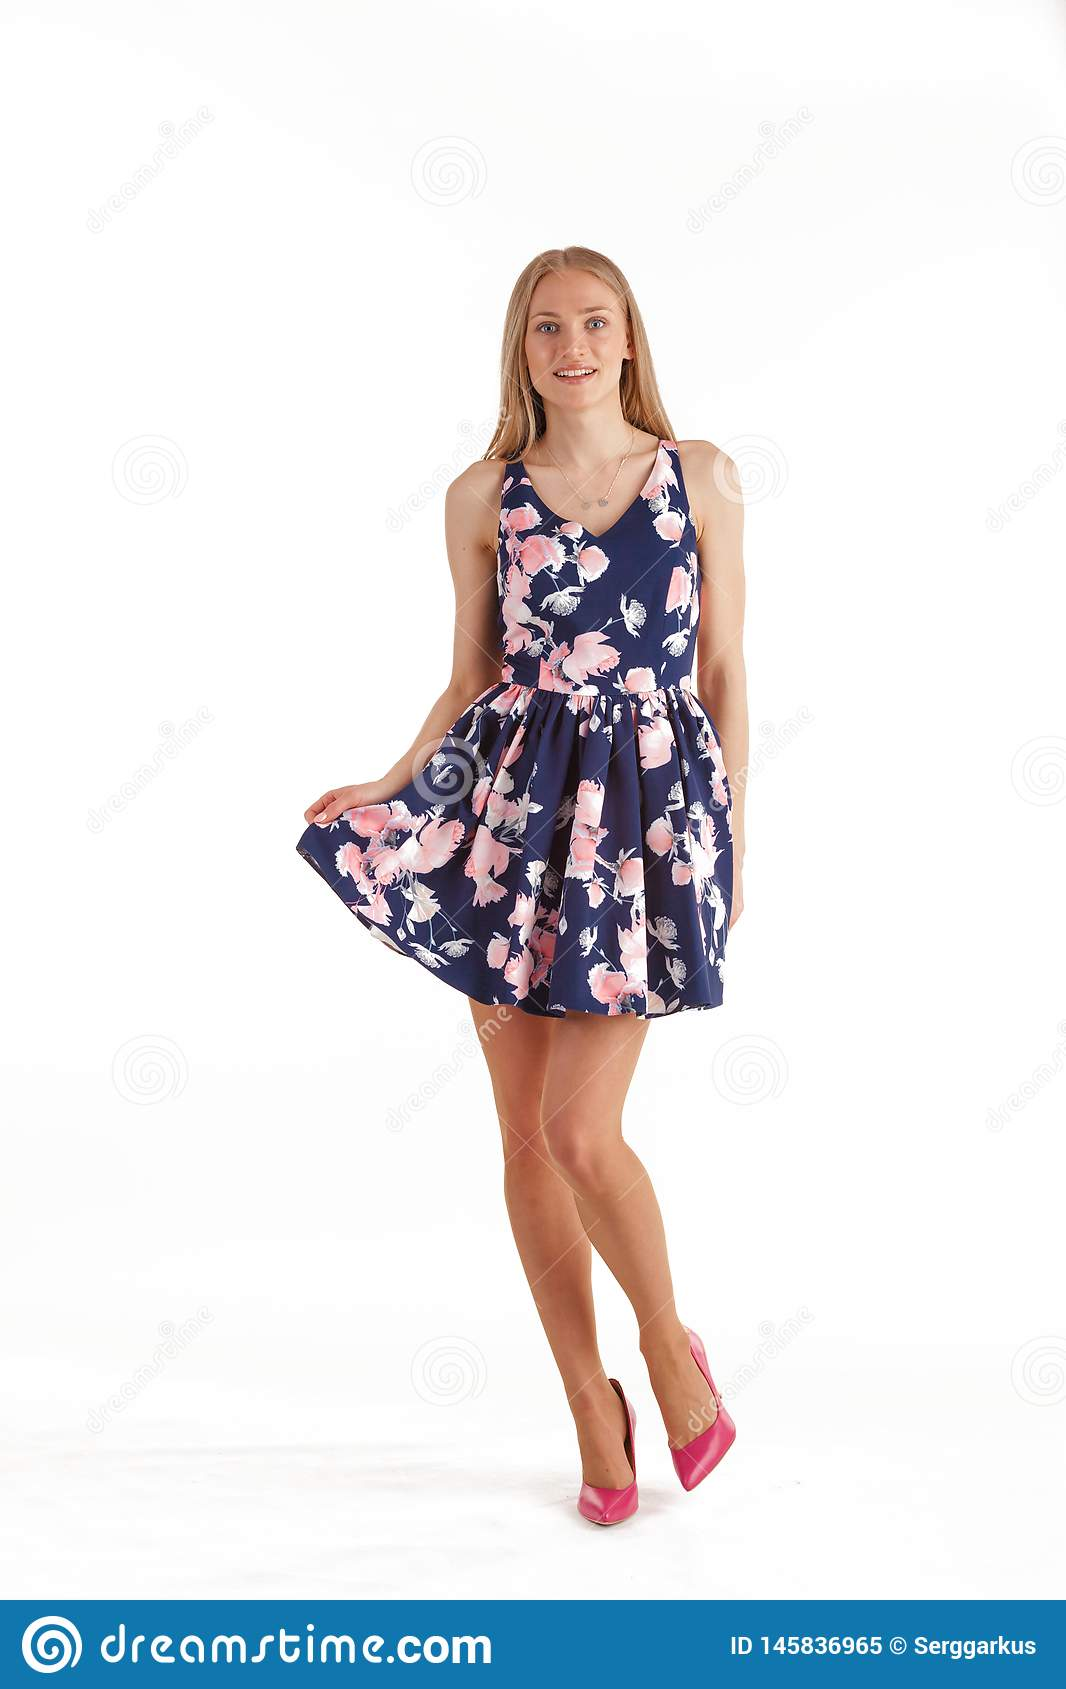 Beautiful young blonde woman in dark blue dress with floral print isolated on white background